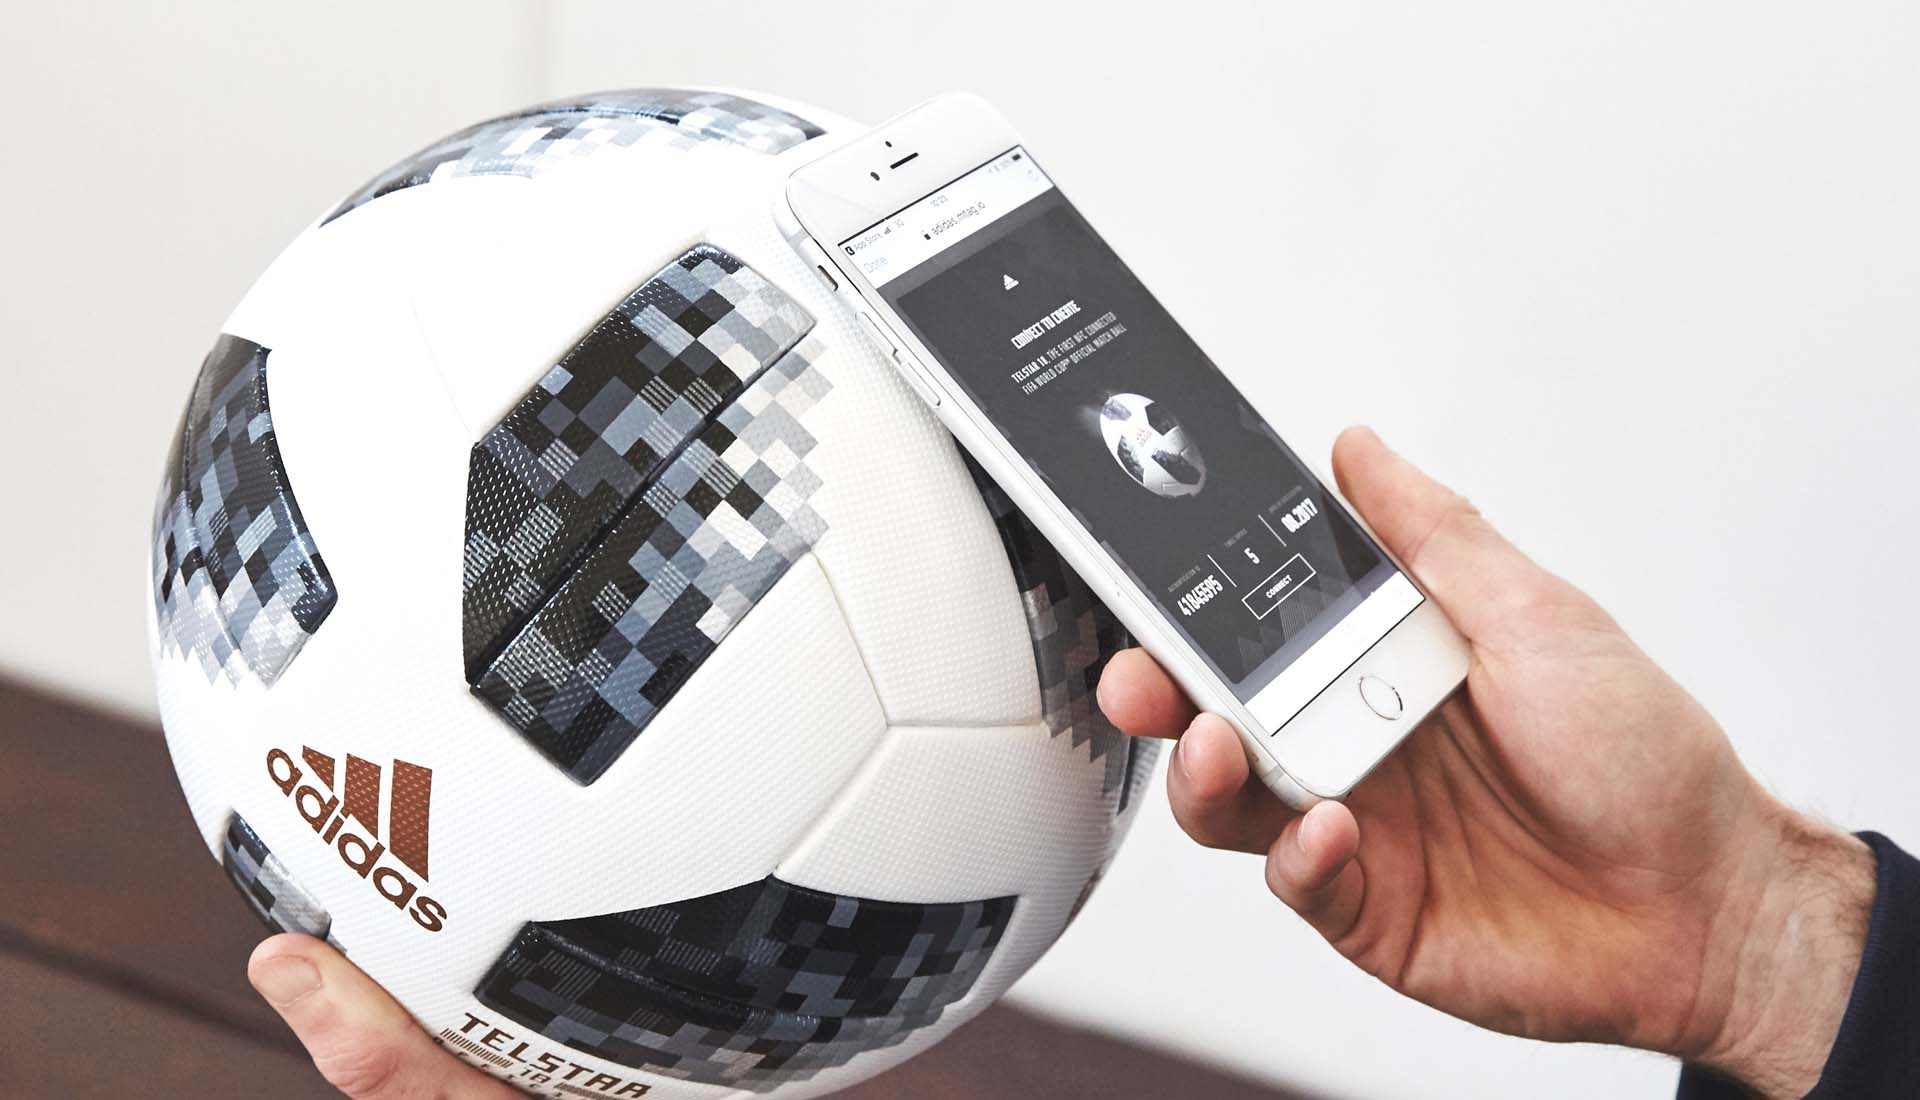 How Does The NFC Tech In The 2018 adidas Telstar Ball Work